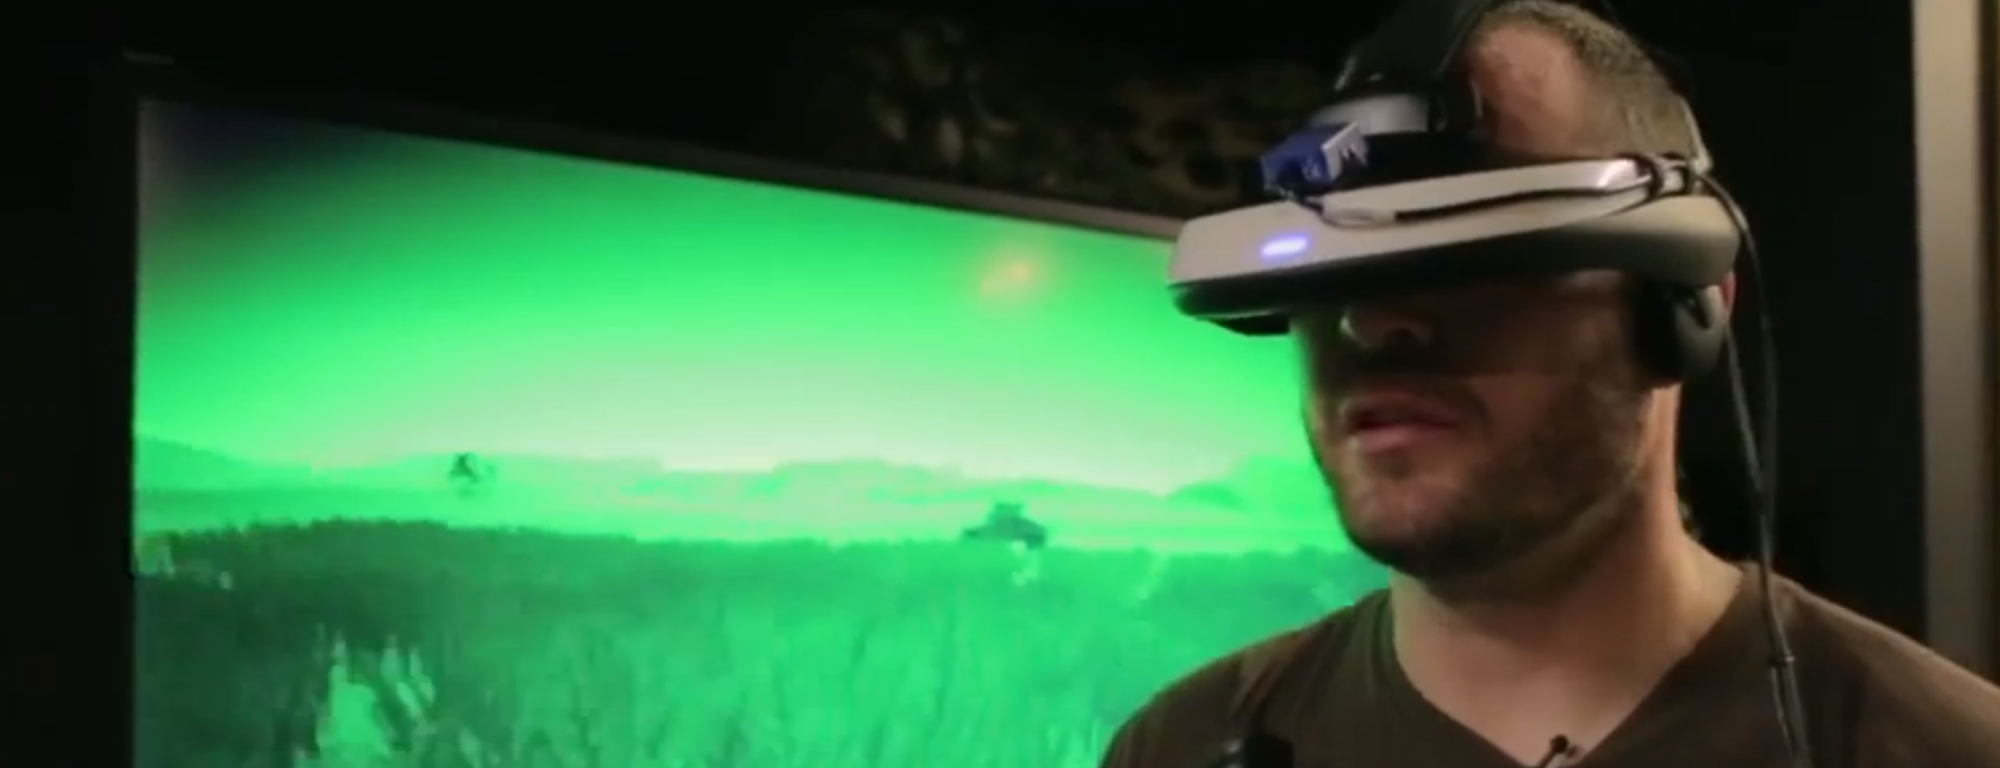 How Virtual Reality is Treating Post-Traumatic Stress Disorder